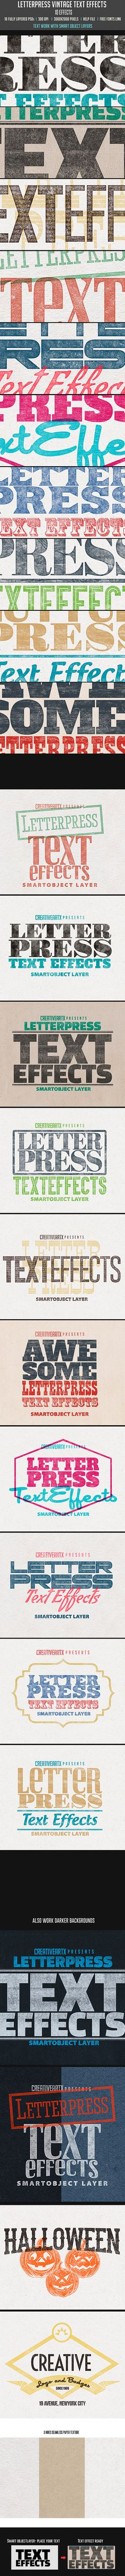 Letterpress Vintage Text Effects for Photoshop. Download here: http://graphicriver.net/item/letterpress-vintage-text-effects/9749142?ref=ksioks